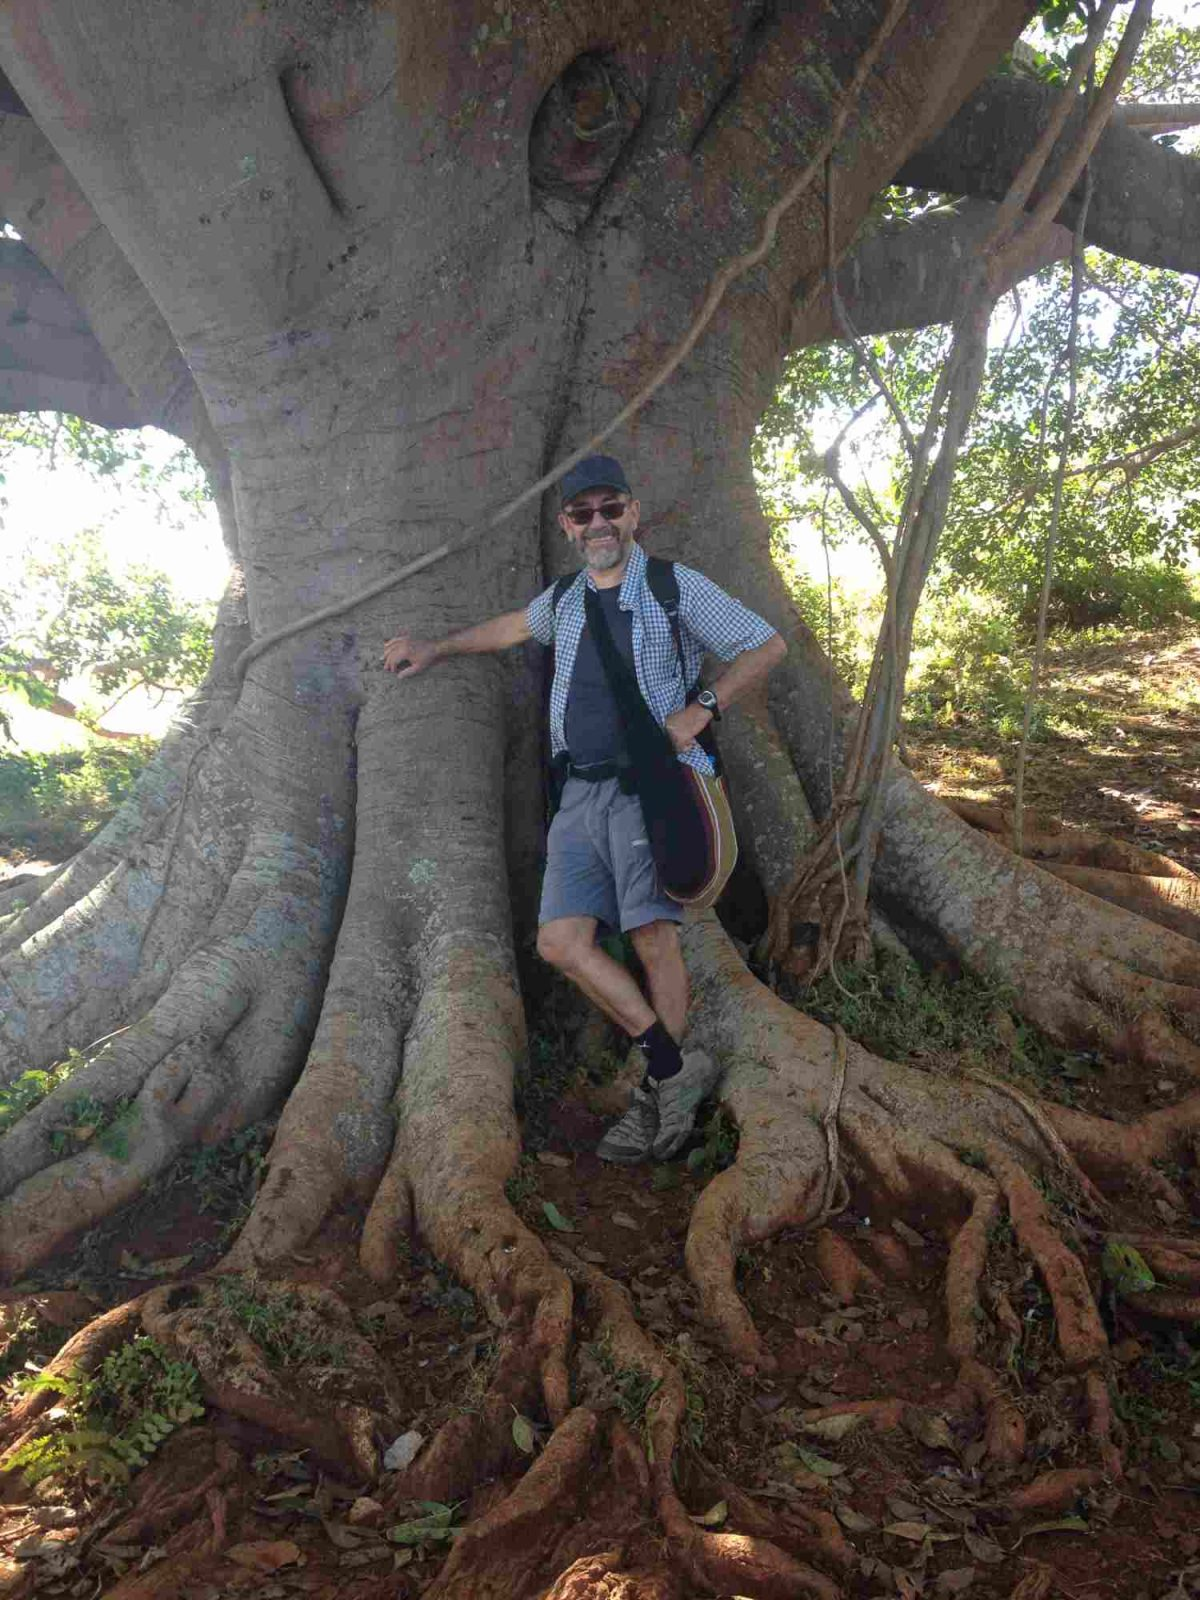 Huge trees and me